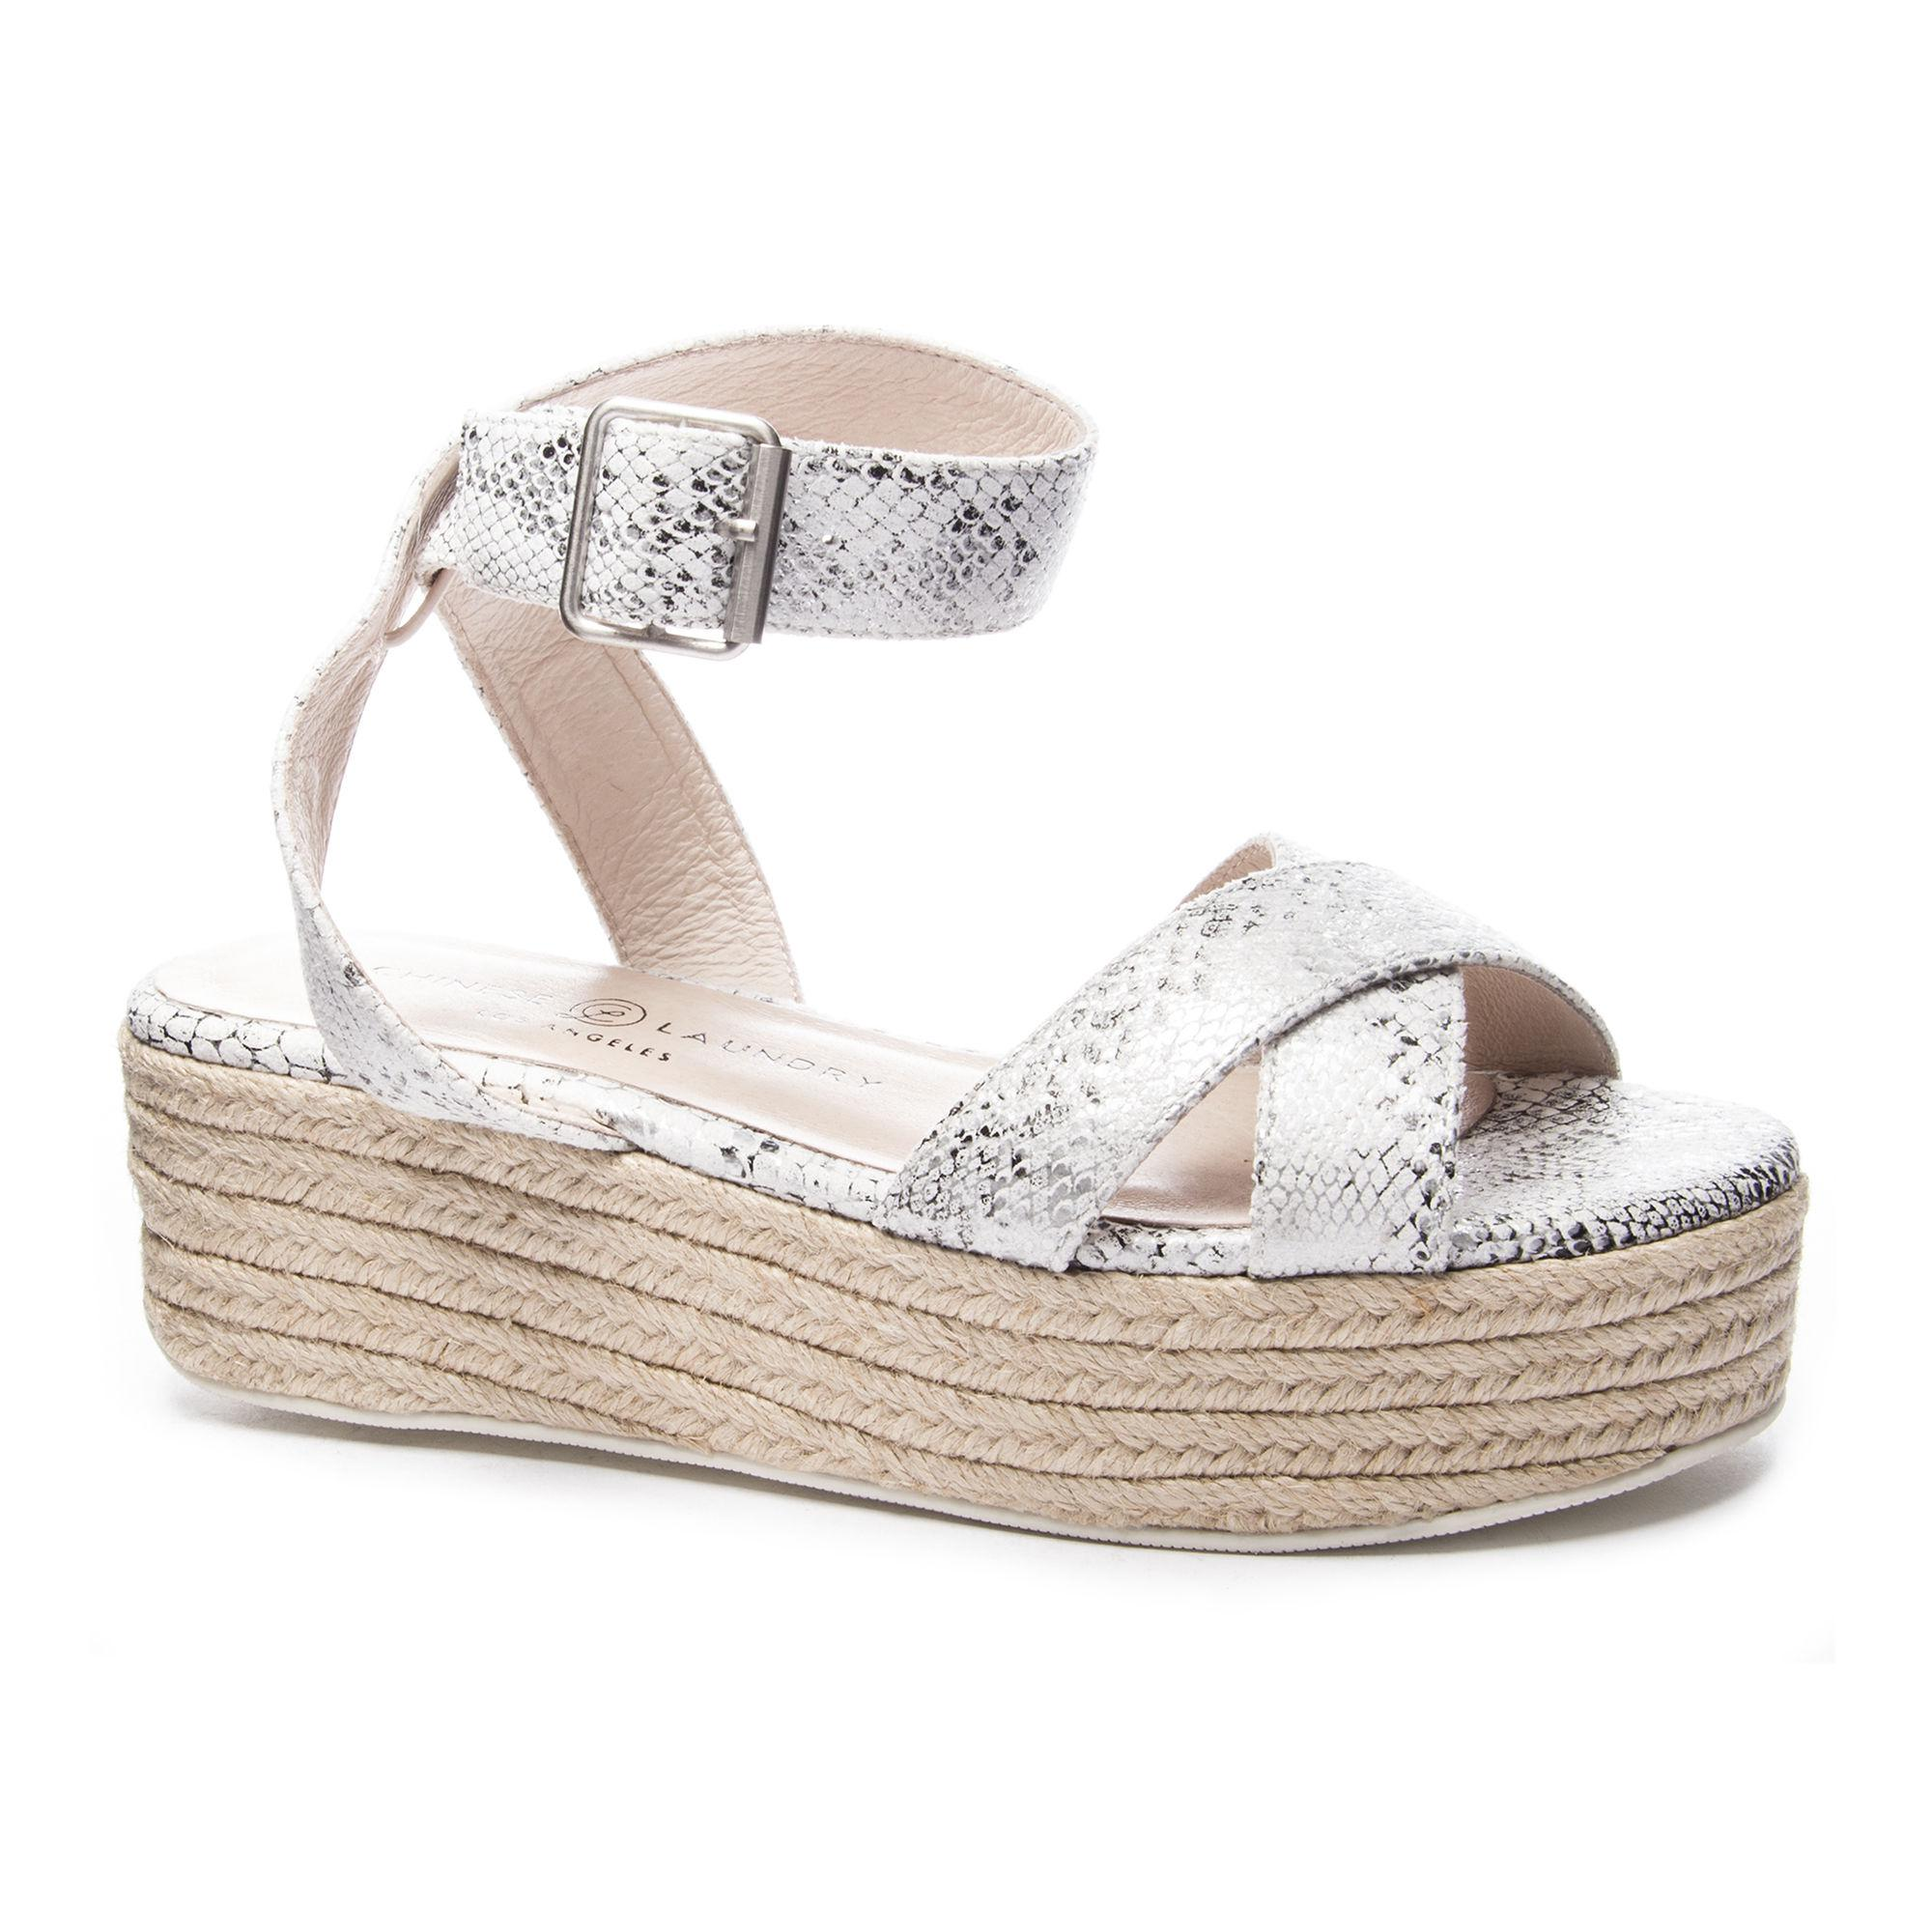 9a8965bf9bc1 Lyst - Chinese Laundry Zala Wedge Sandal in White